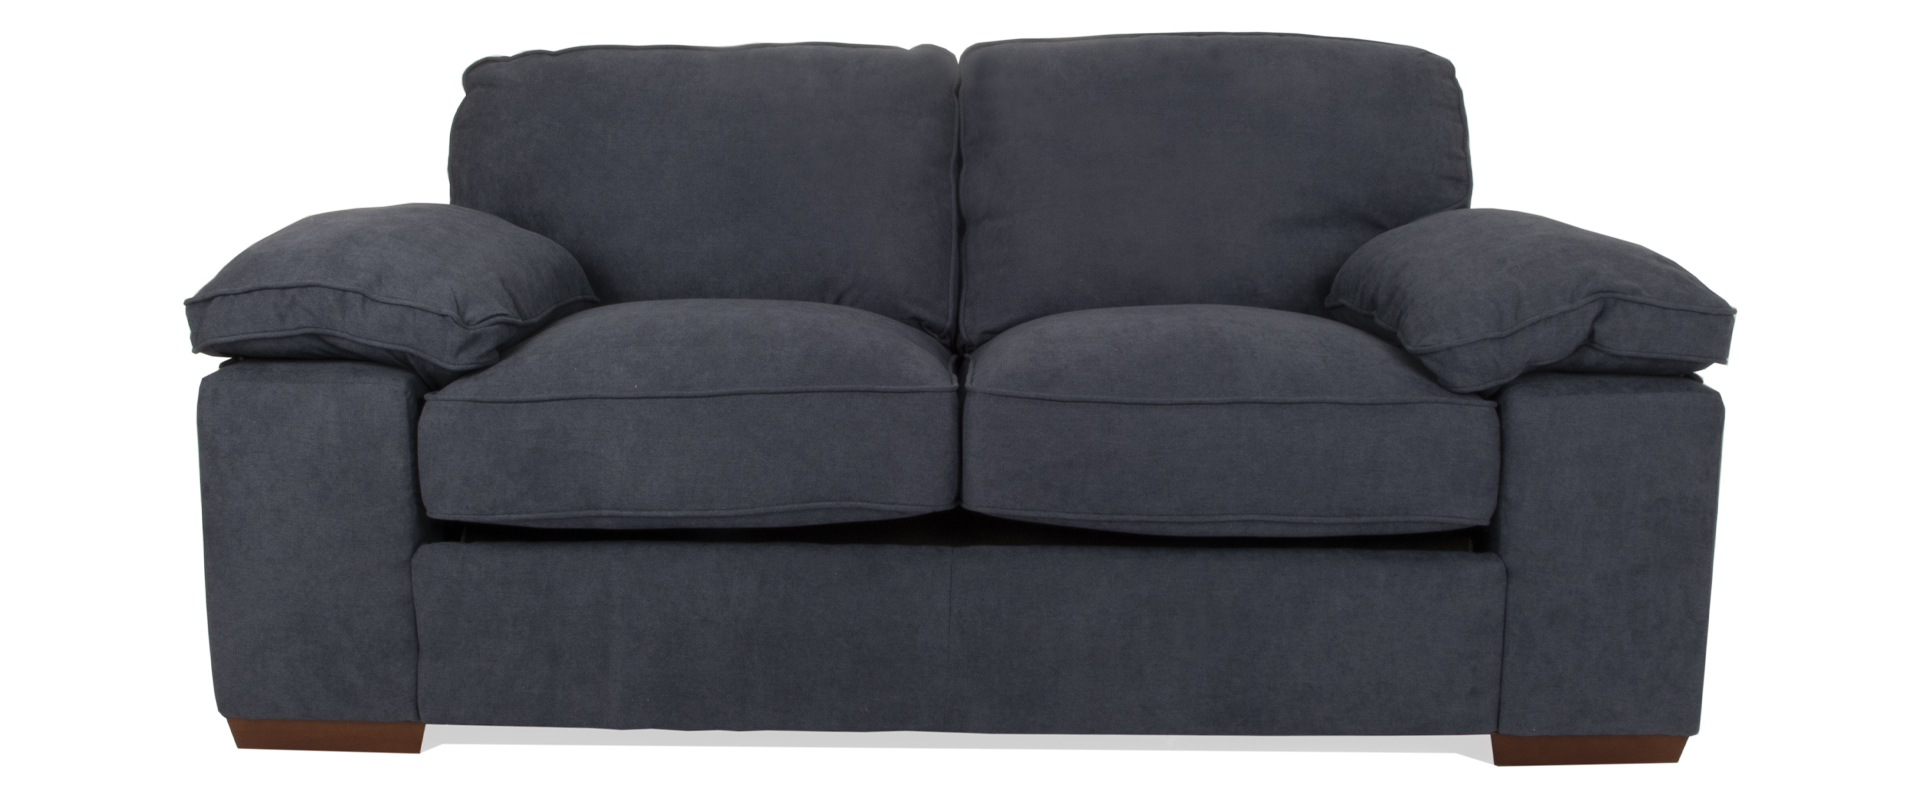 Cassie 2 Seater Sofabed In Navy Fabric